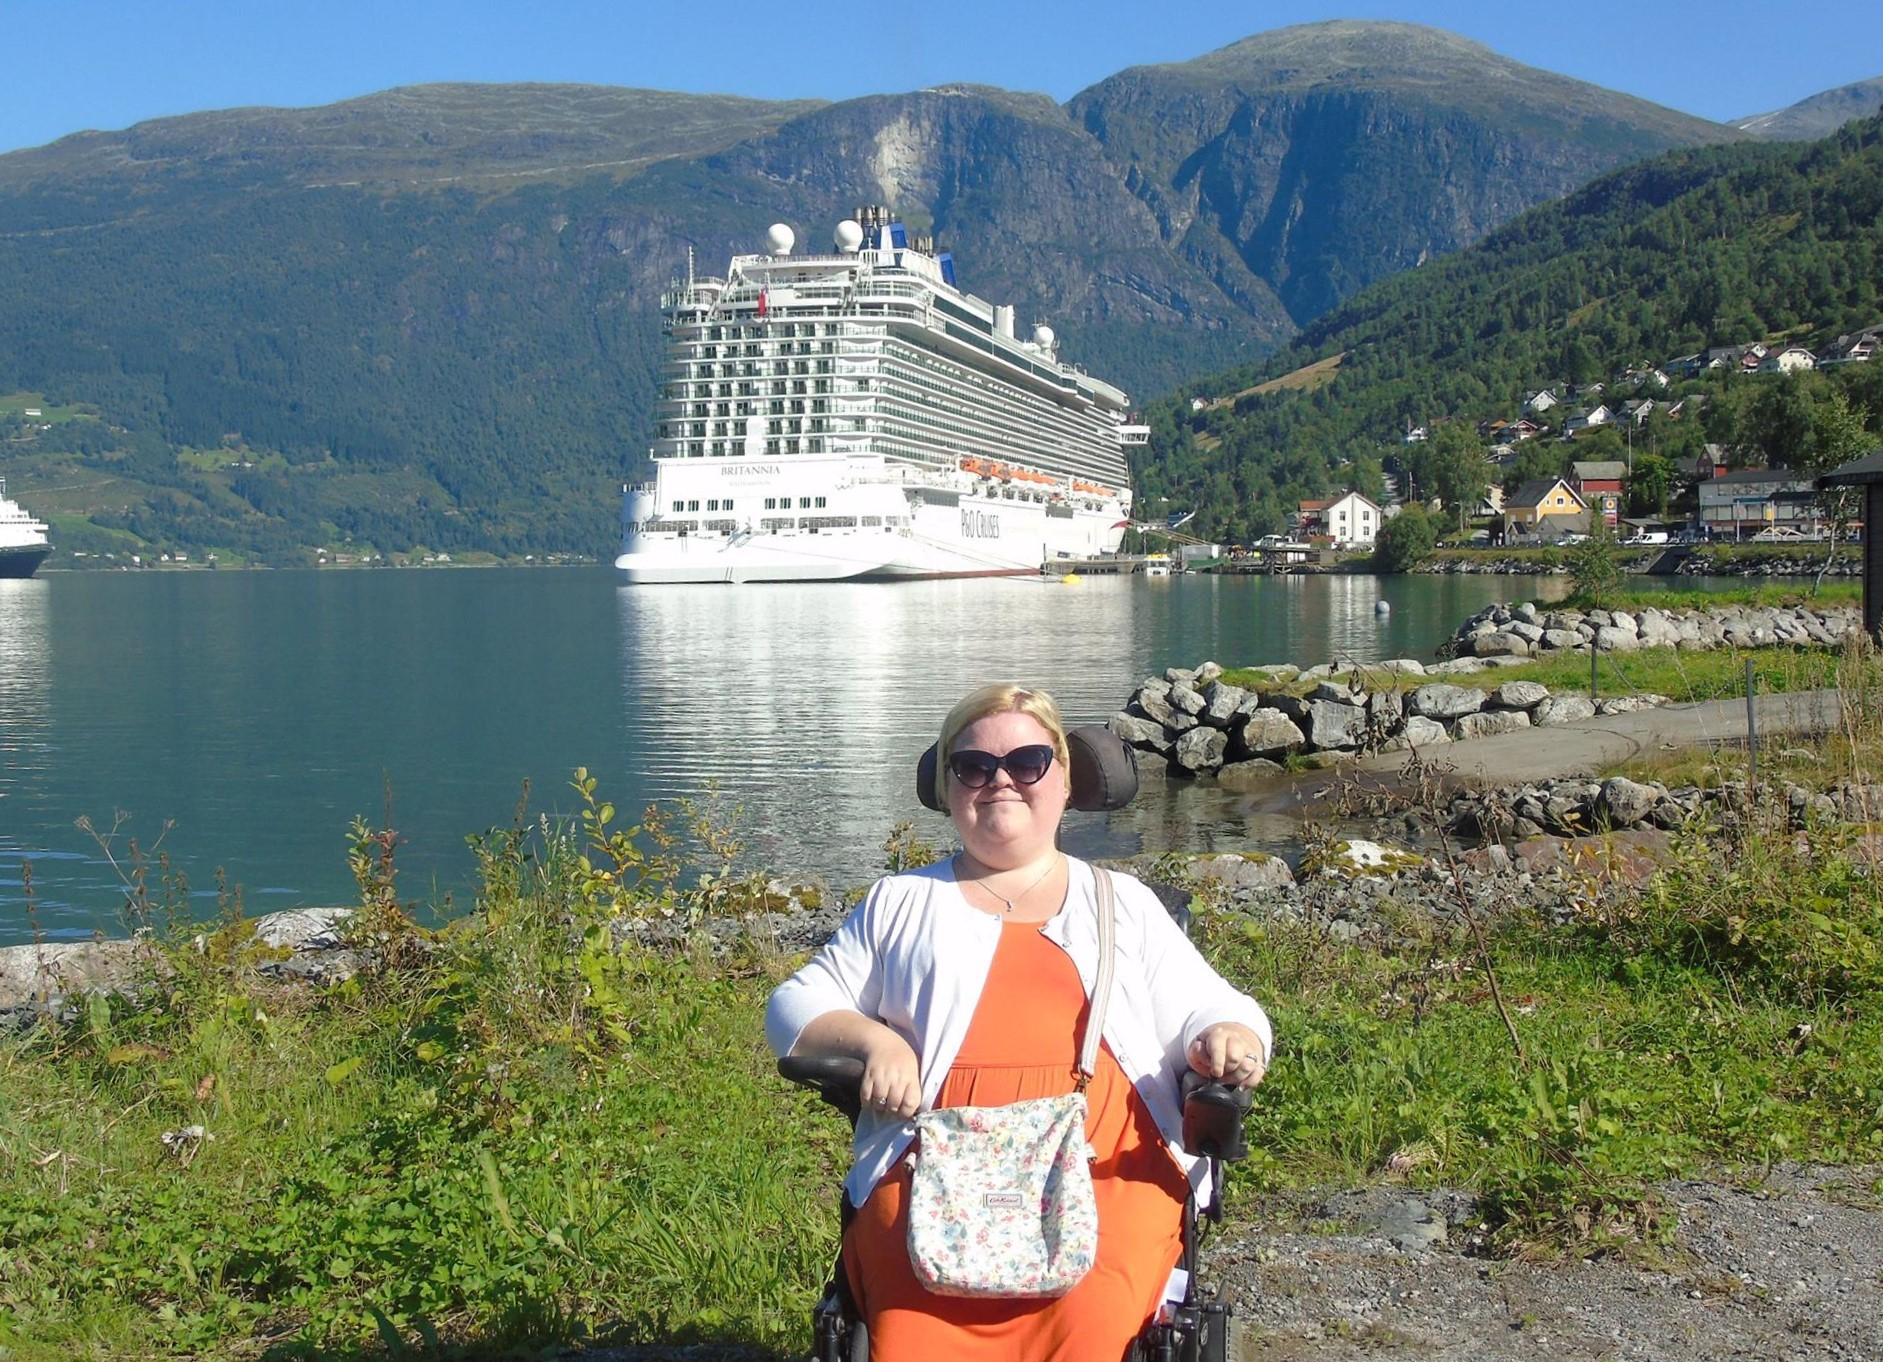 Lady sat on a powerchair wearing sunglasses in front of a cruise ship with mountains behind